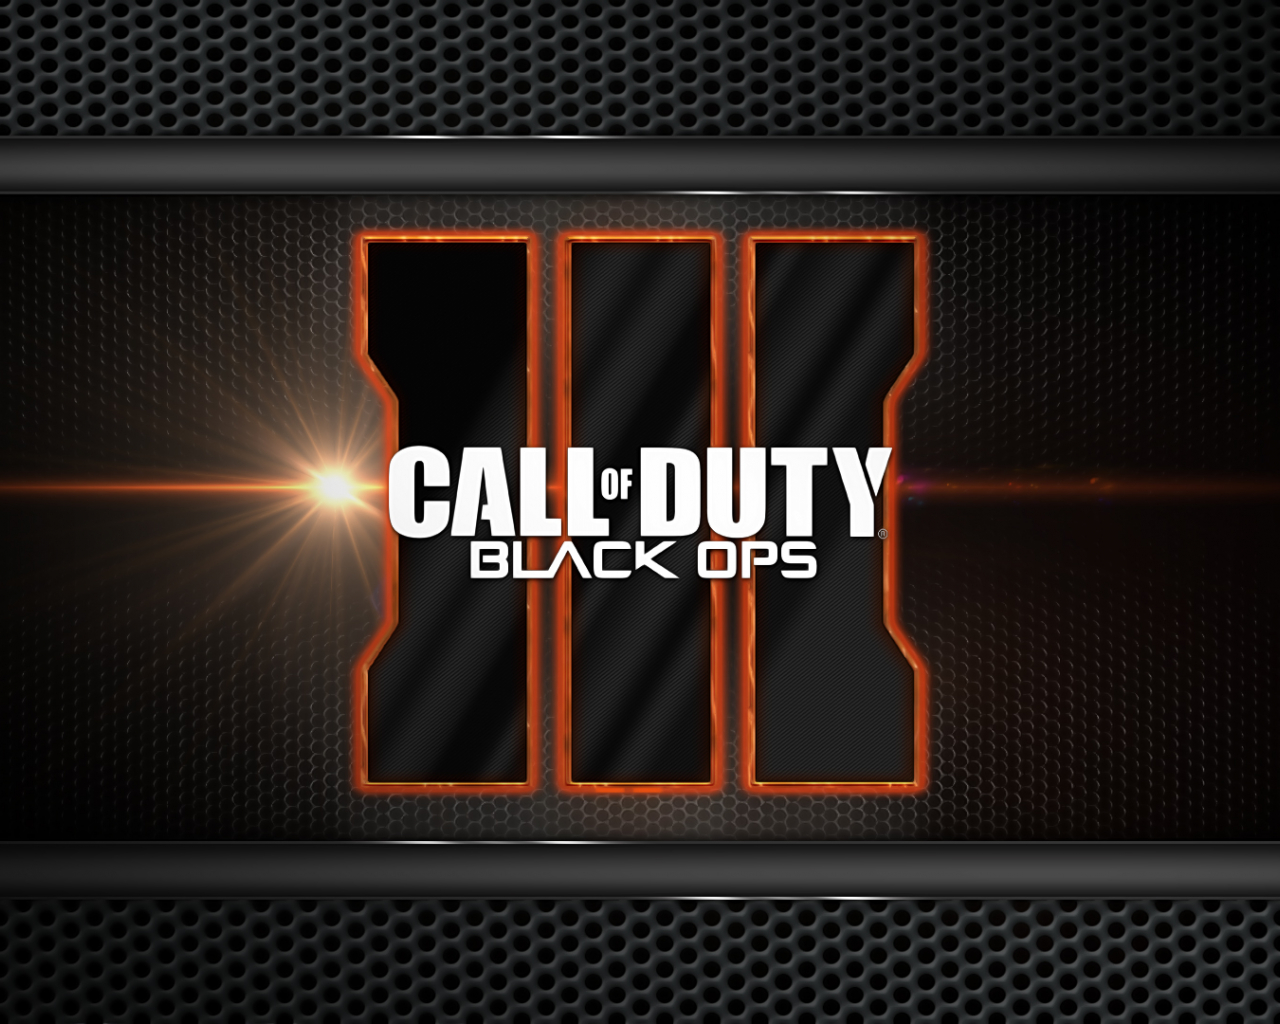 Free Download Other Wallpapers Of Call Of Duty Black Ops 3 Call Of